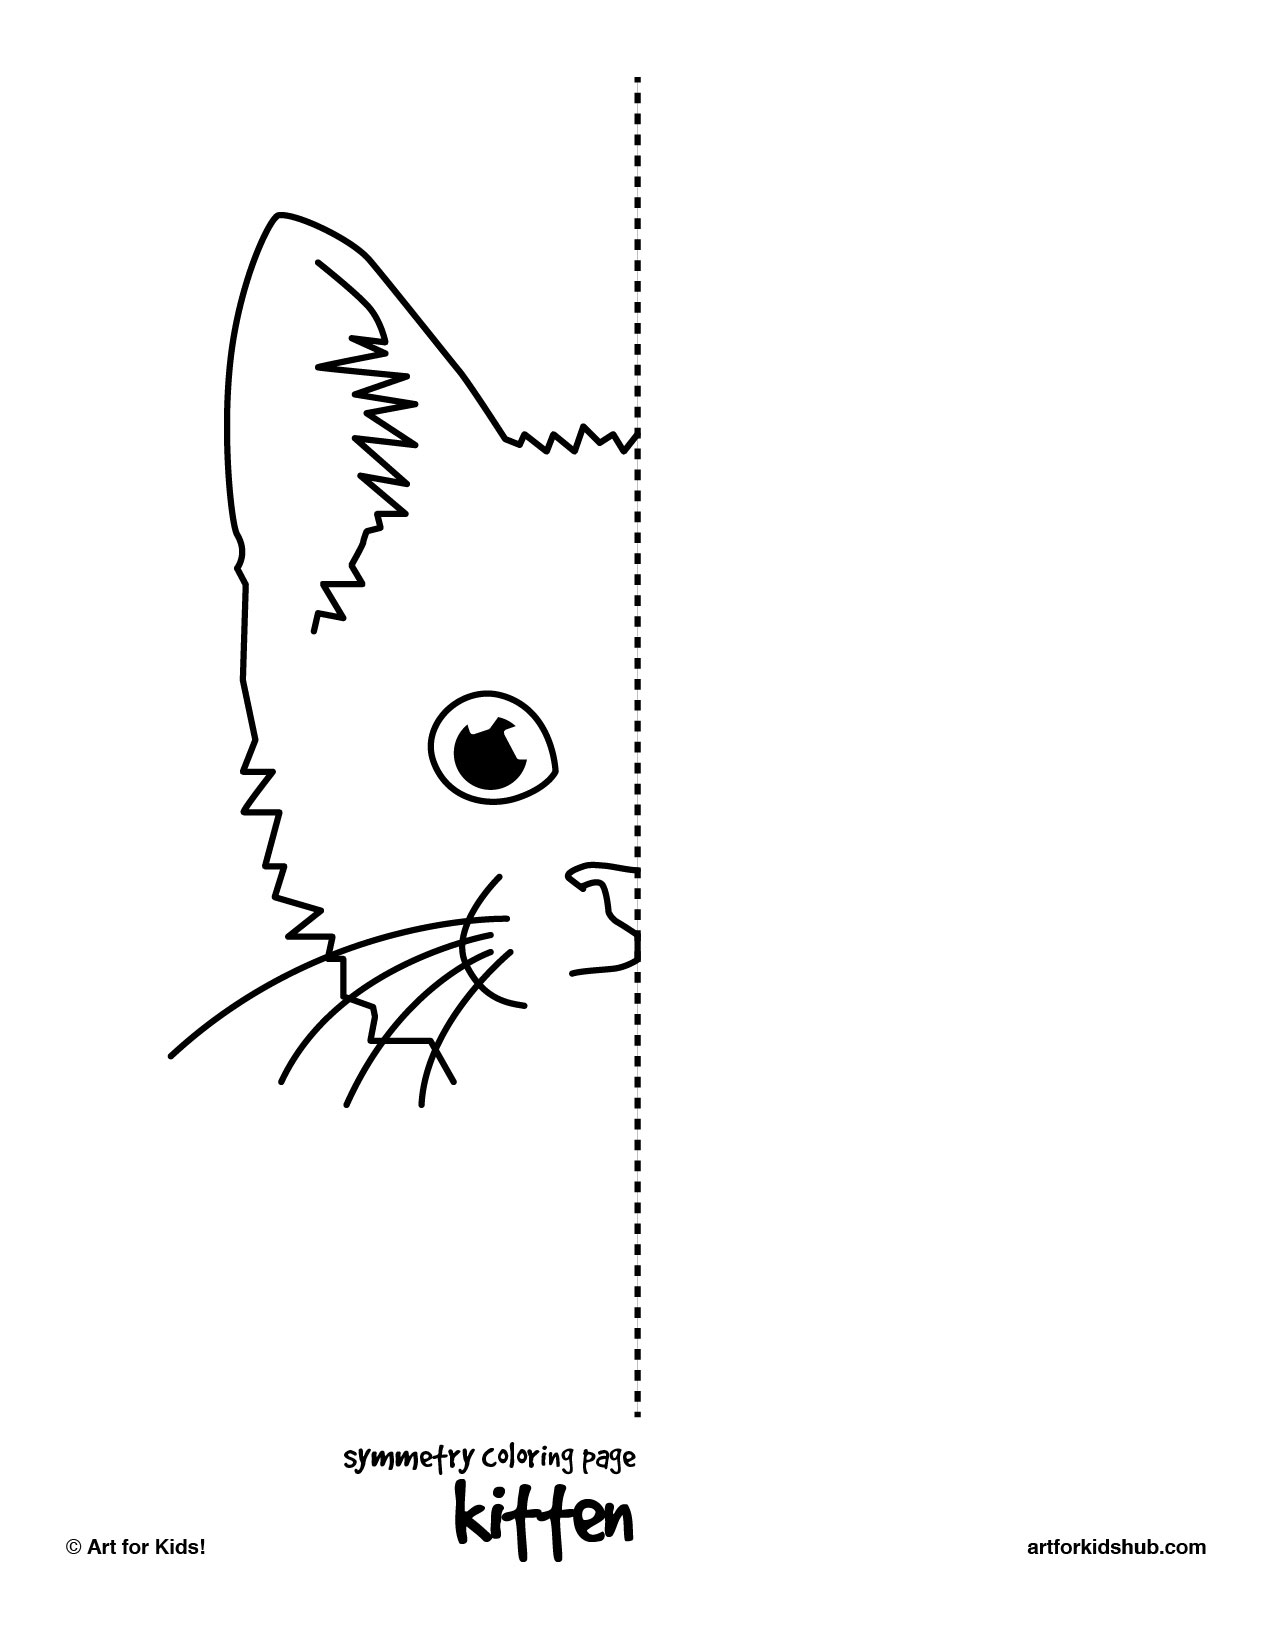 6 Best Images Of Symmetry Complete The Drawing Printables